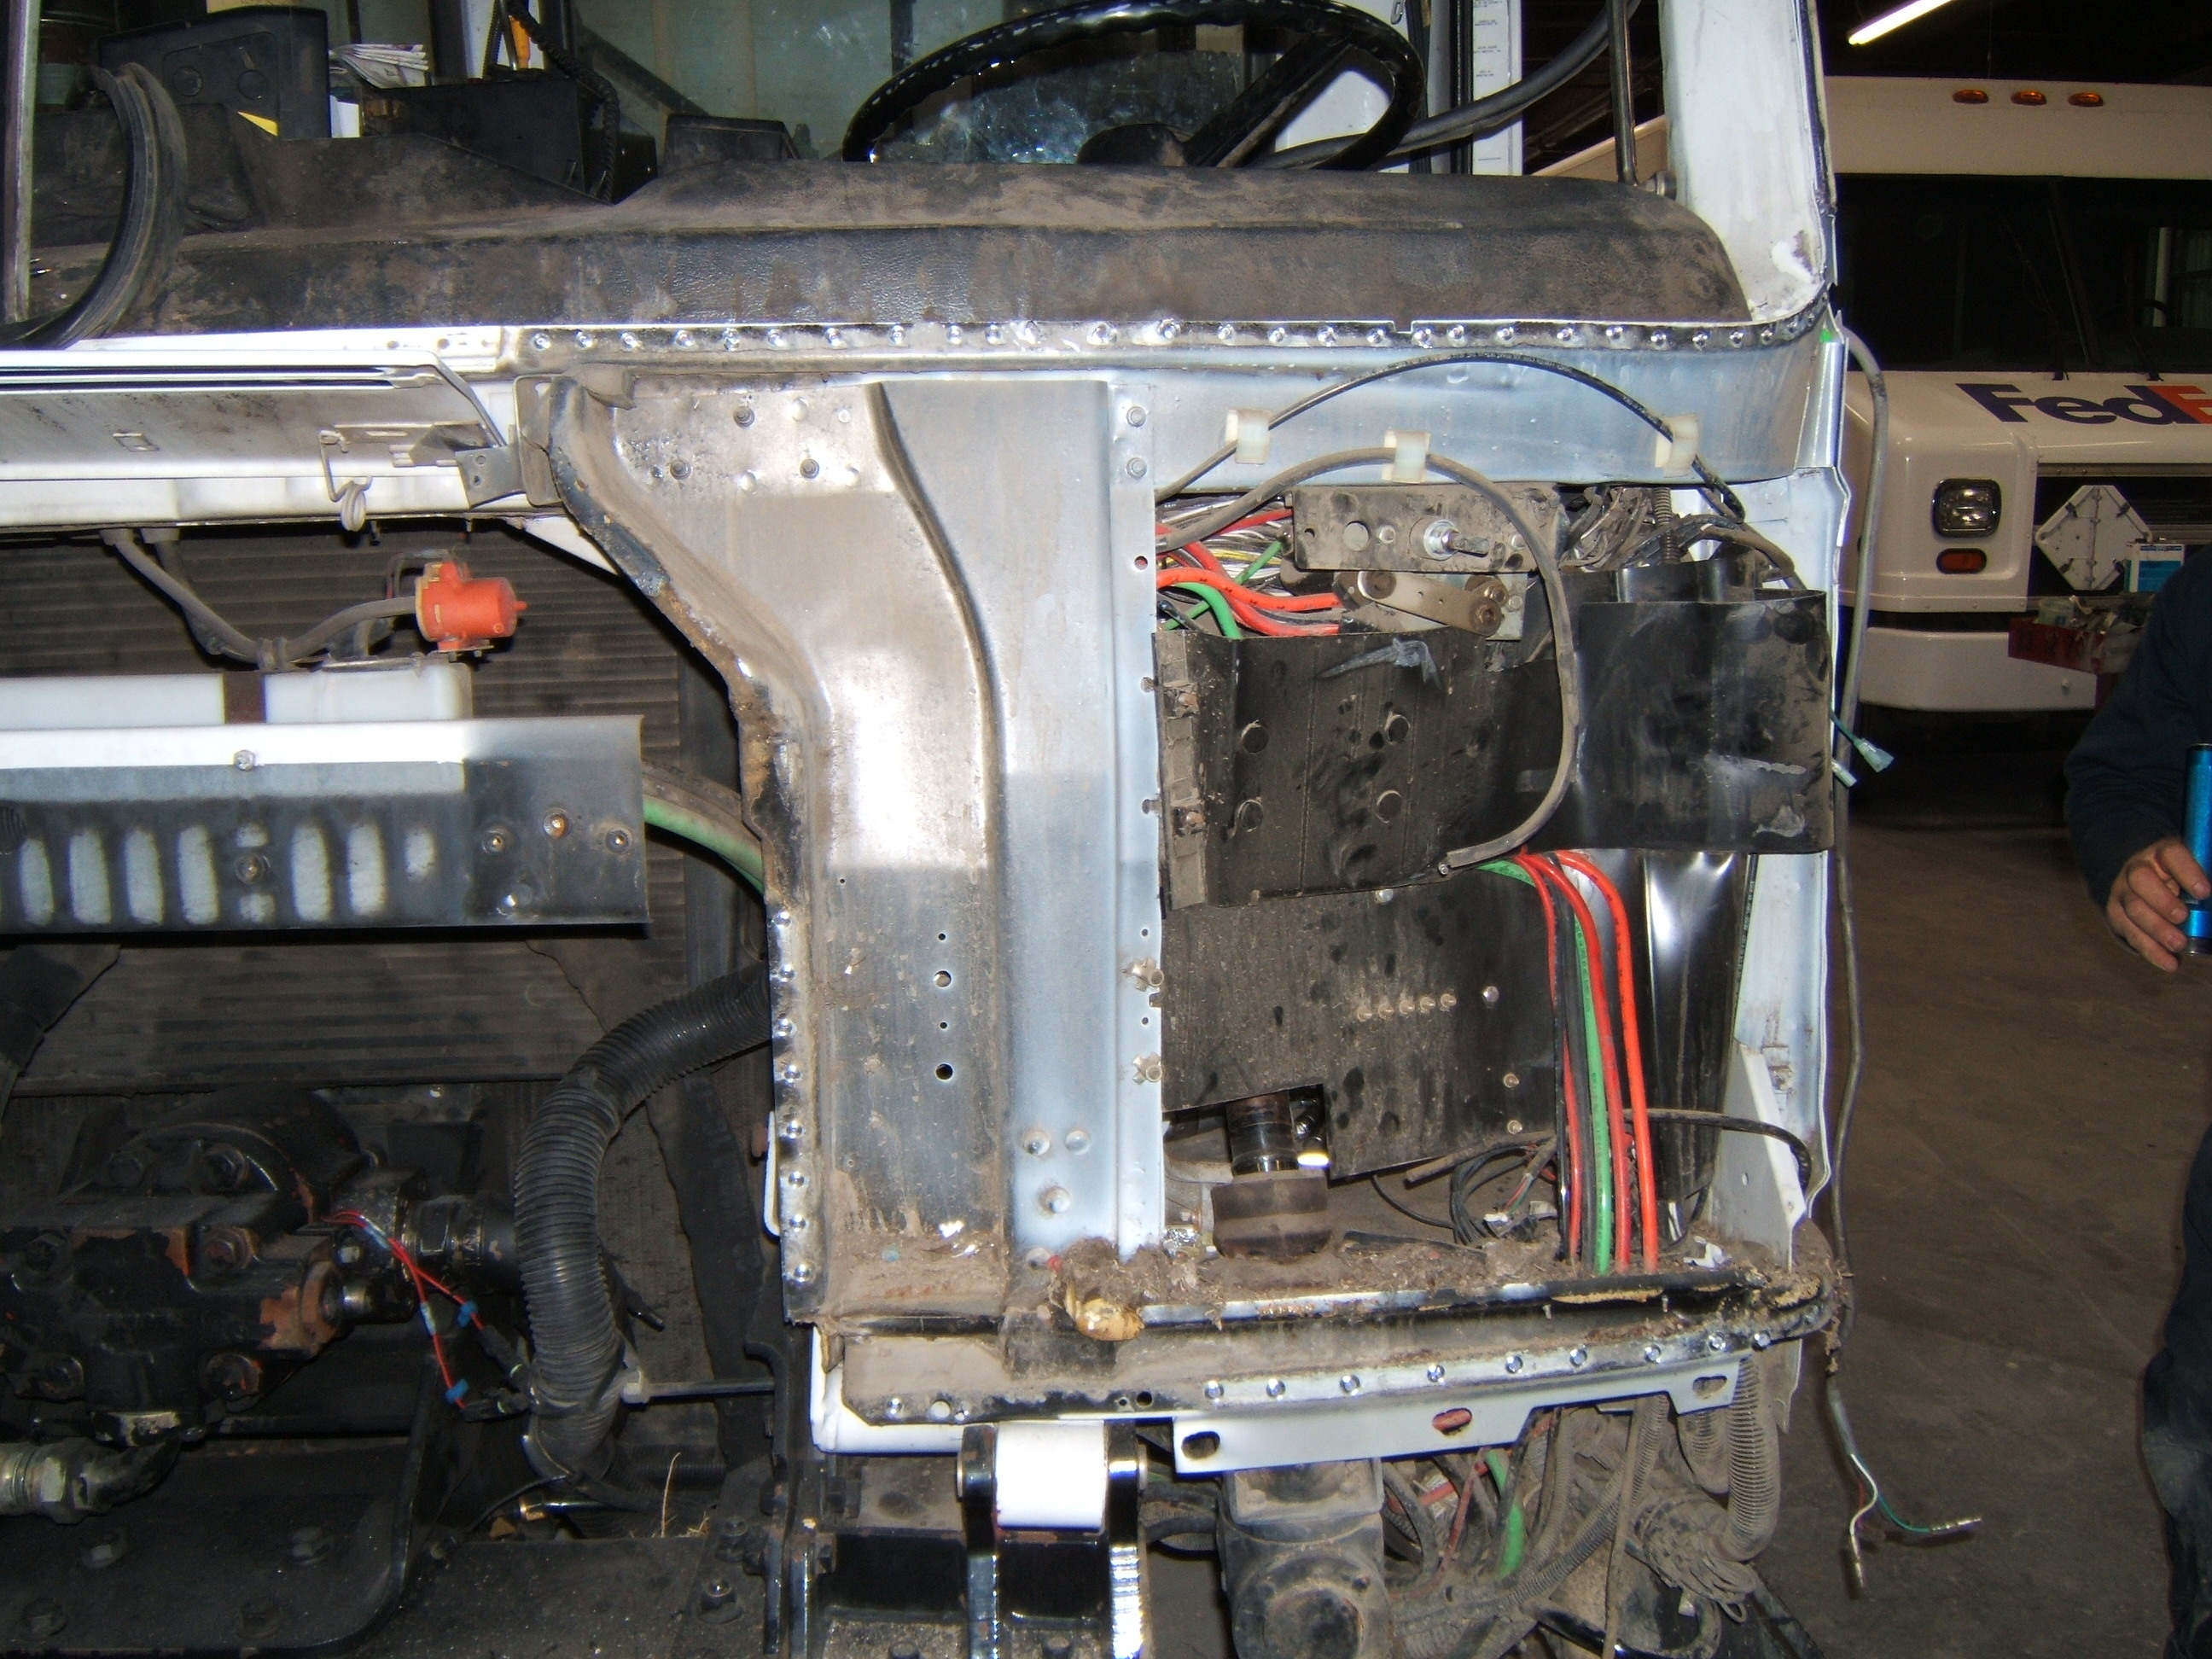 truck-repair-tear-down - We perform systems check to verify electrical components pass all tests.